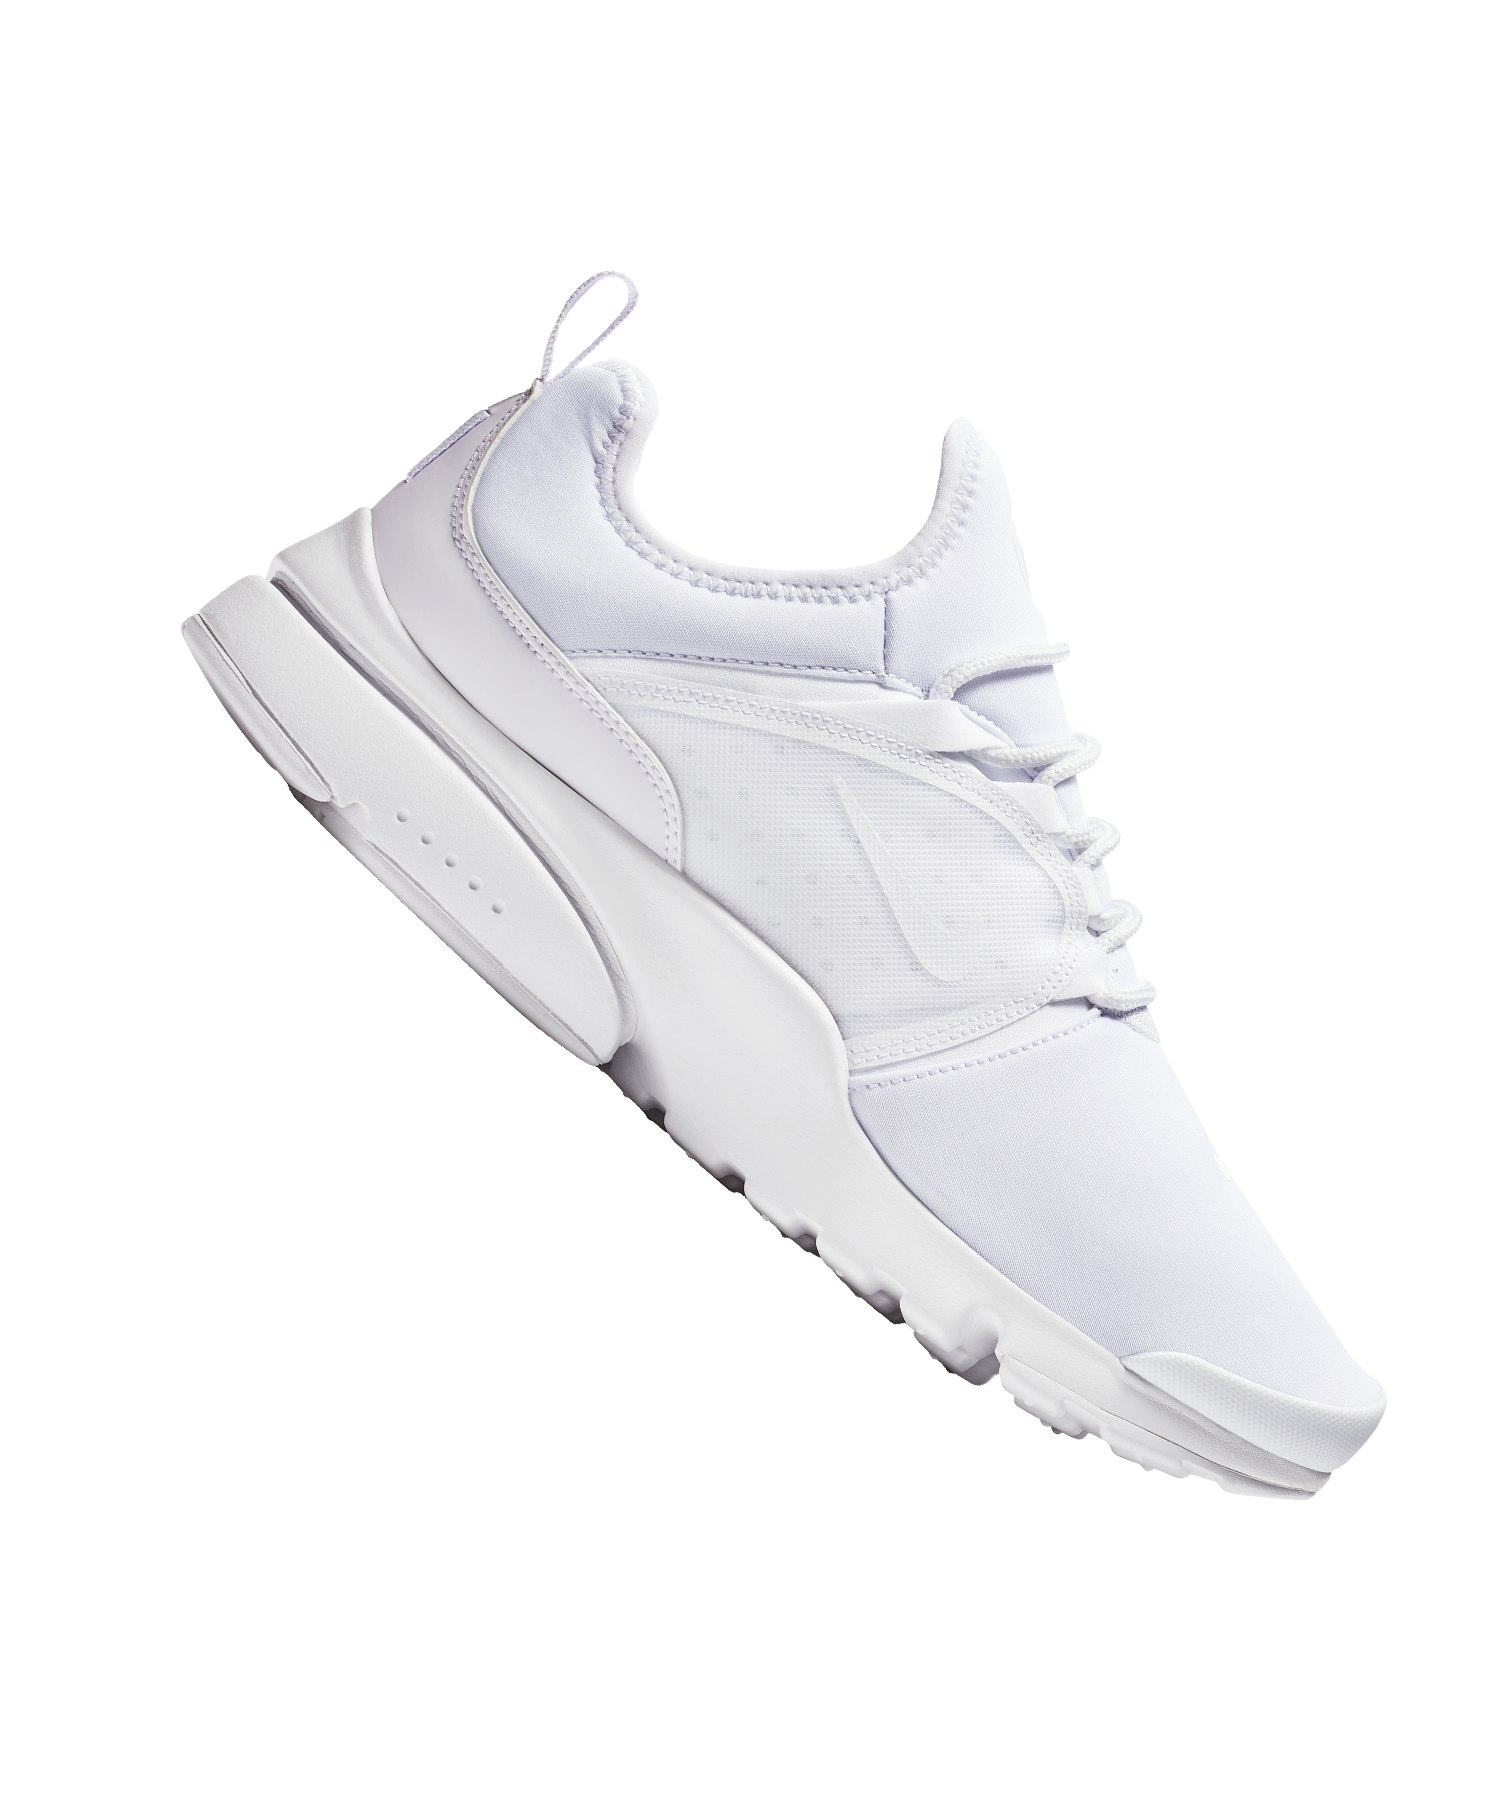 new styles 79f84 eb868 Nike Presto Fly World Sneaker Weiss F101 - weiss